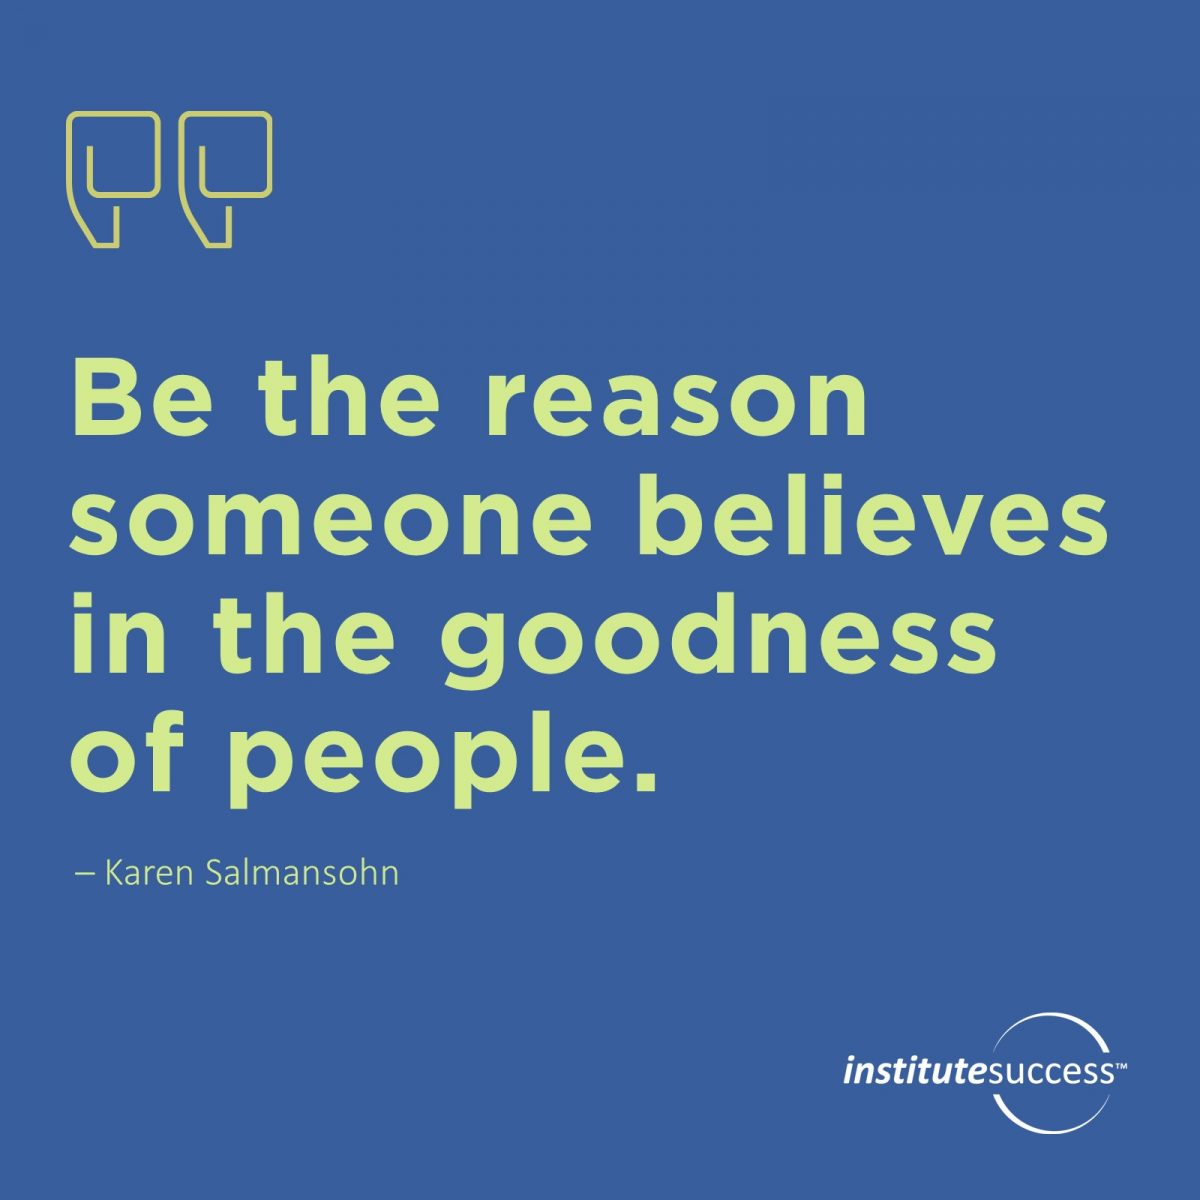 Be the reason someone believes in the goodness of people. – Karen Salmansohn